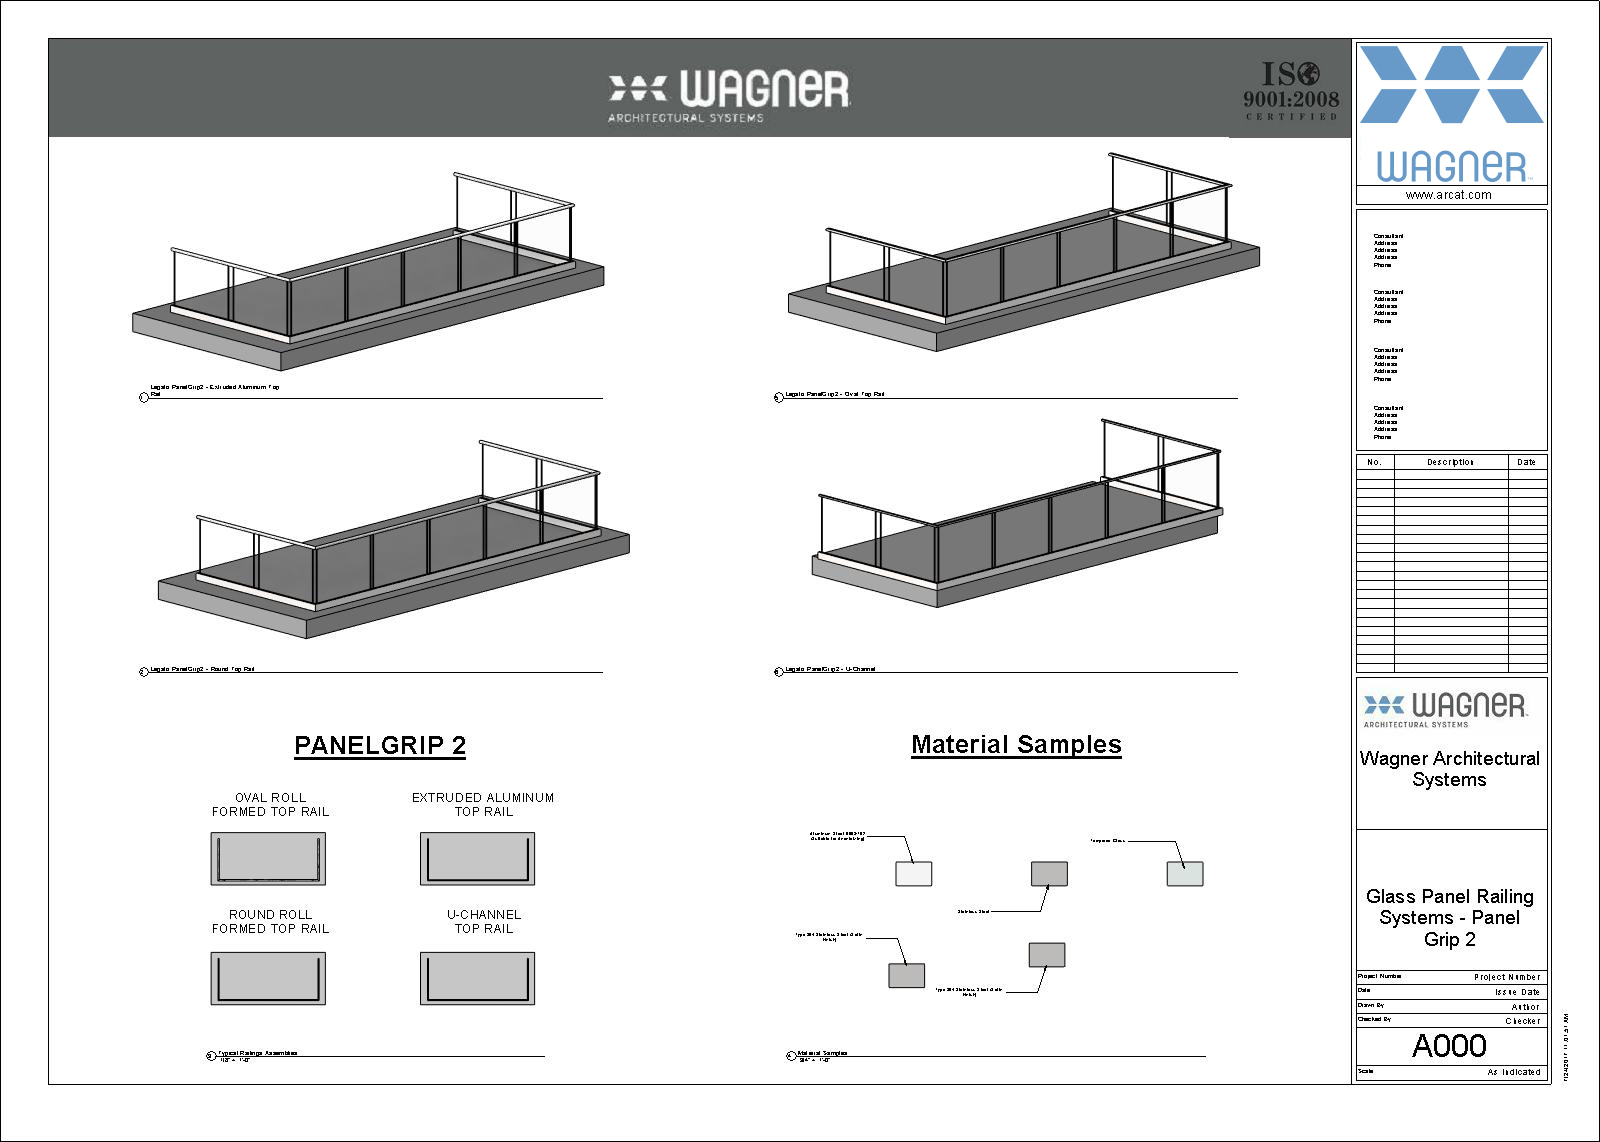 Architectural Building information Modeling BIM - Wagner Architectural